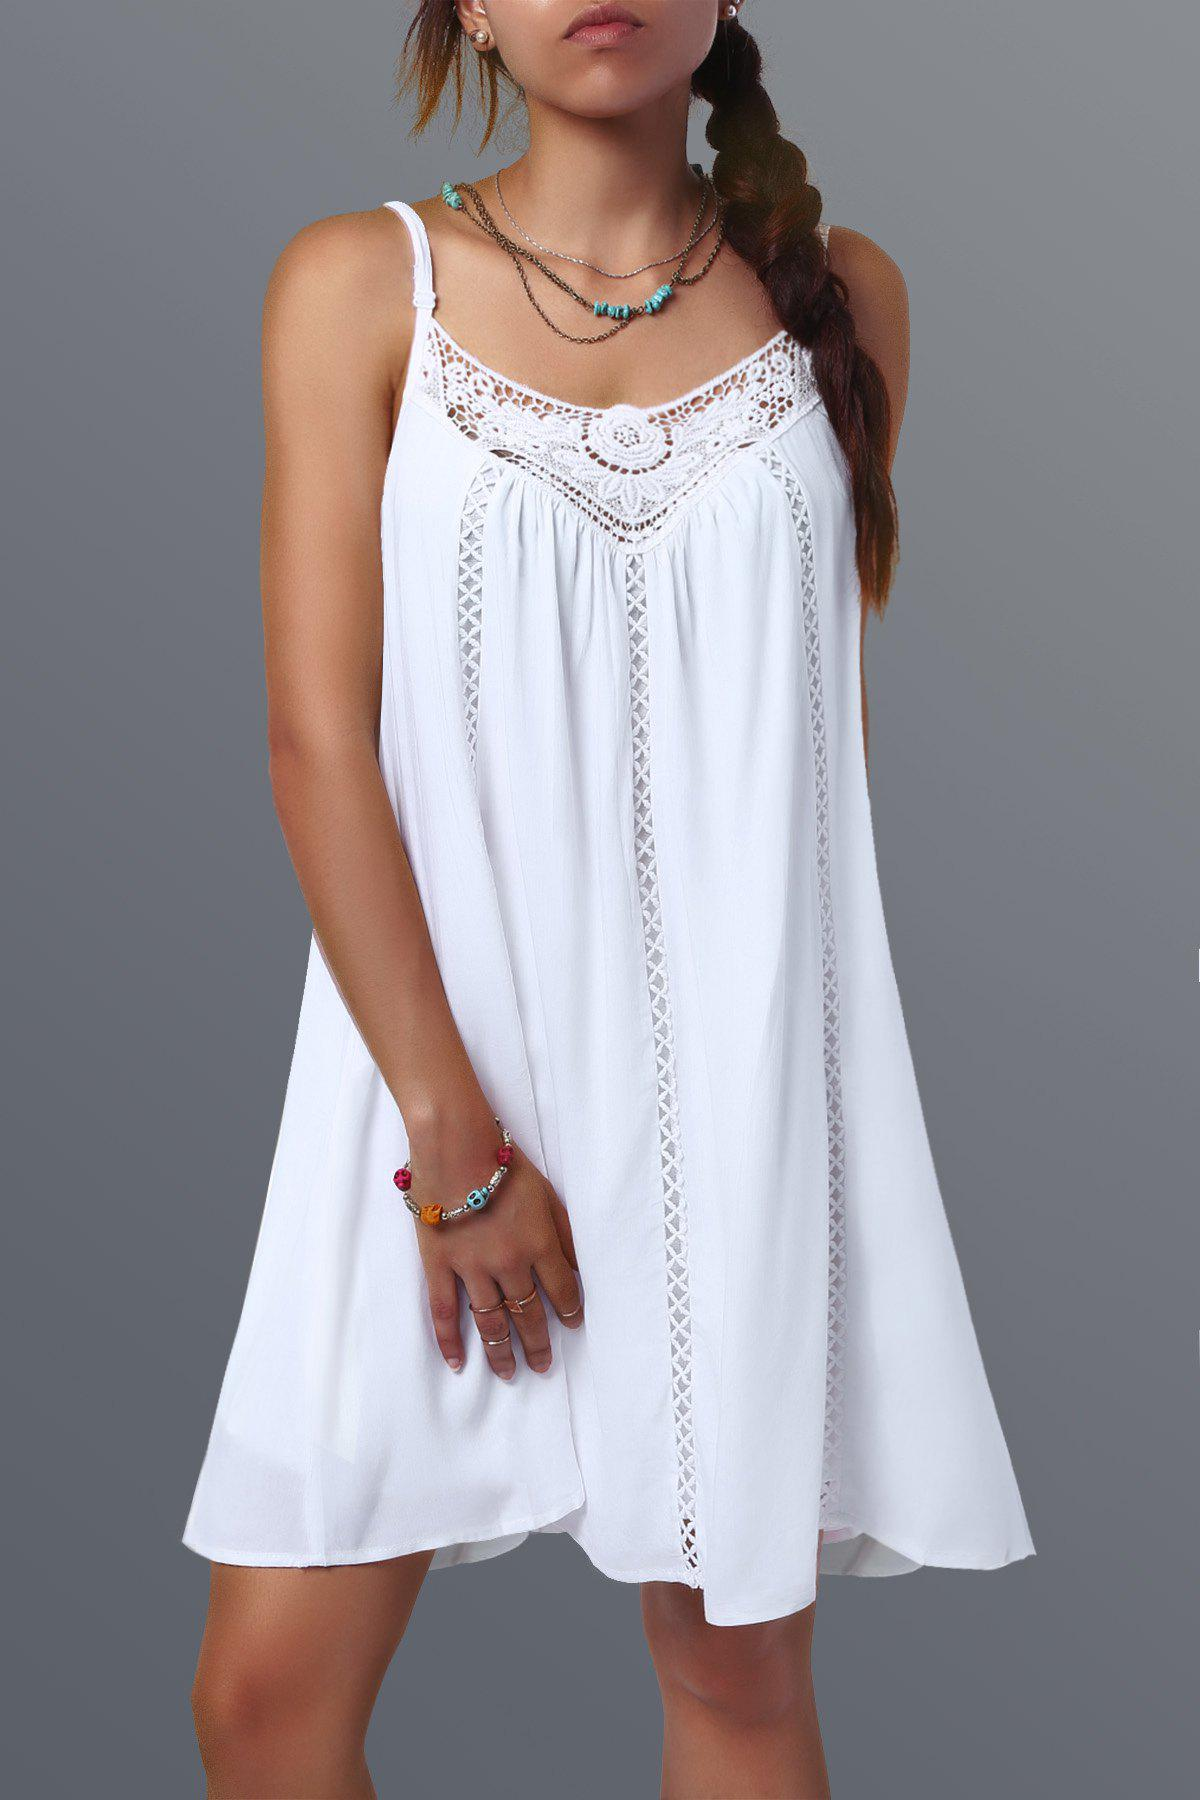 Lace Spliced Hollow Out Summer Dress - WHITE L